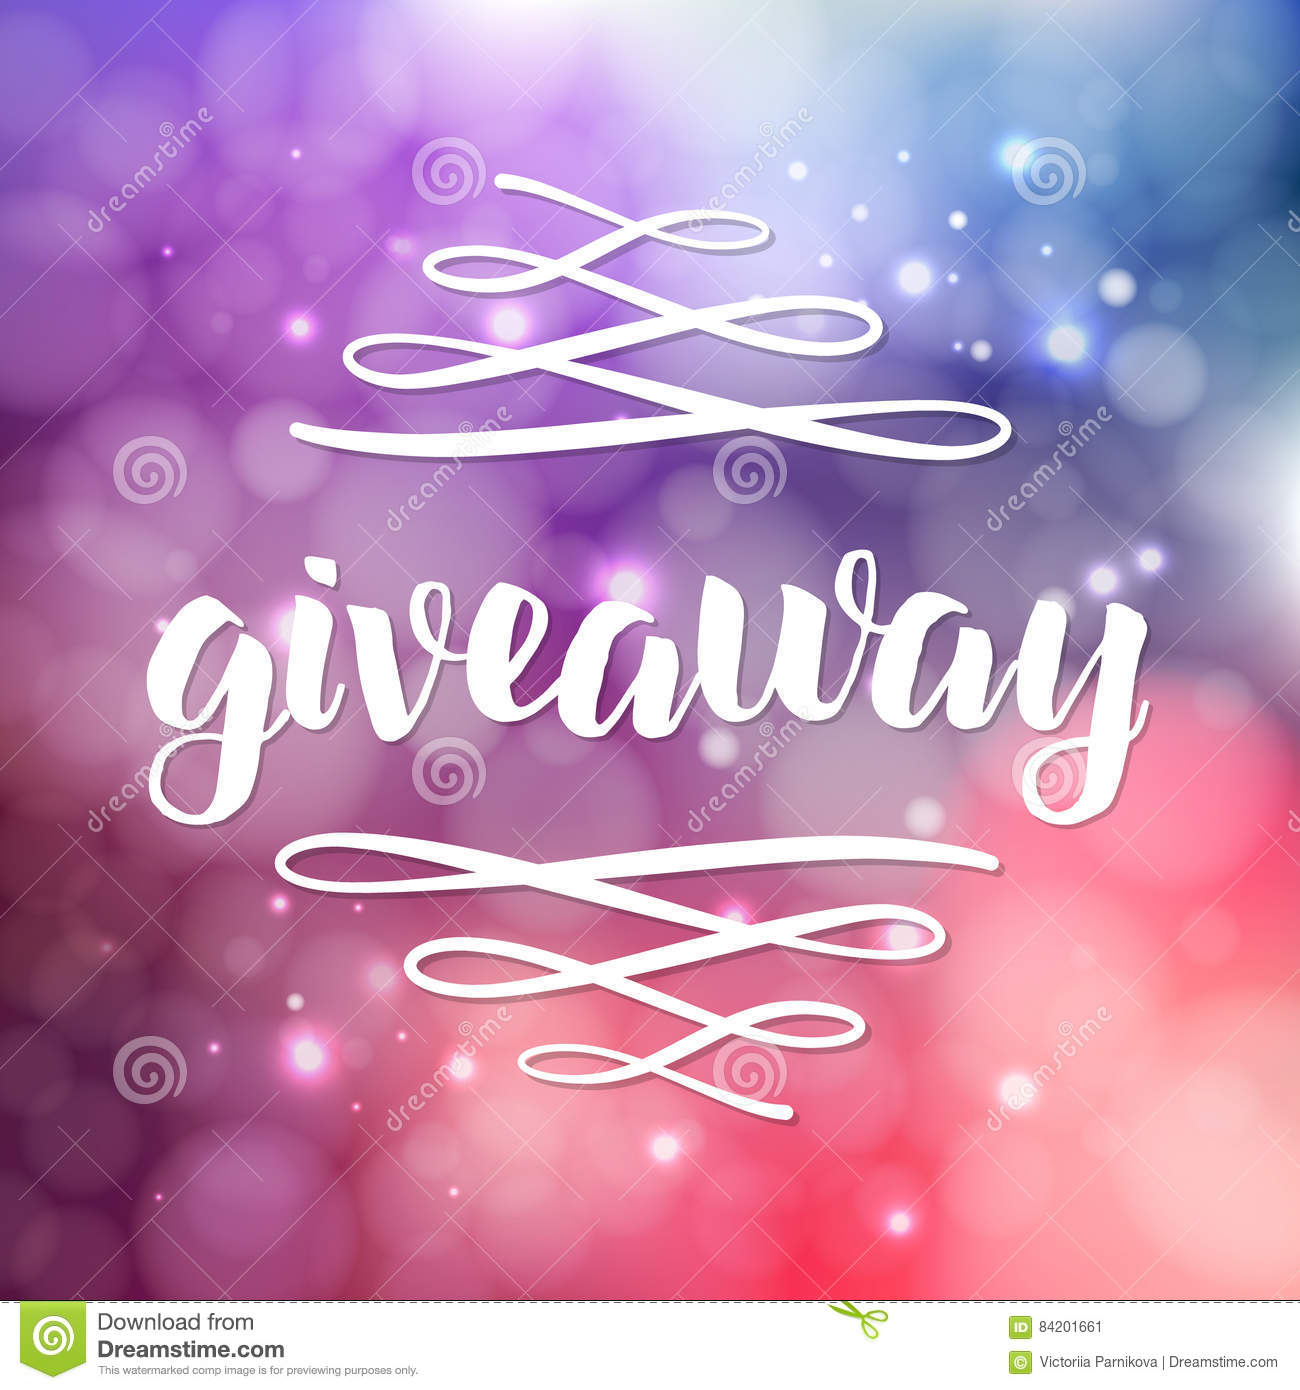 Giveaway Lettering For Promotion In Social Media With Swashes On Blurred Background With Lights Free Gift Raffle Win A Freebies Vector Advertising